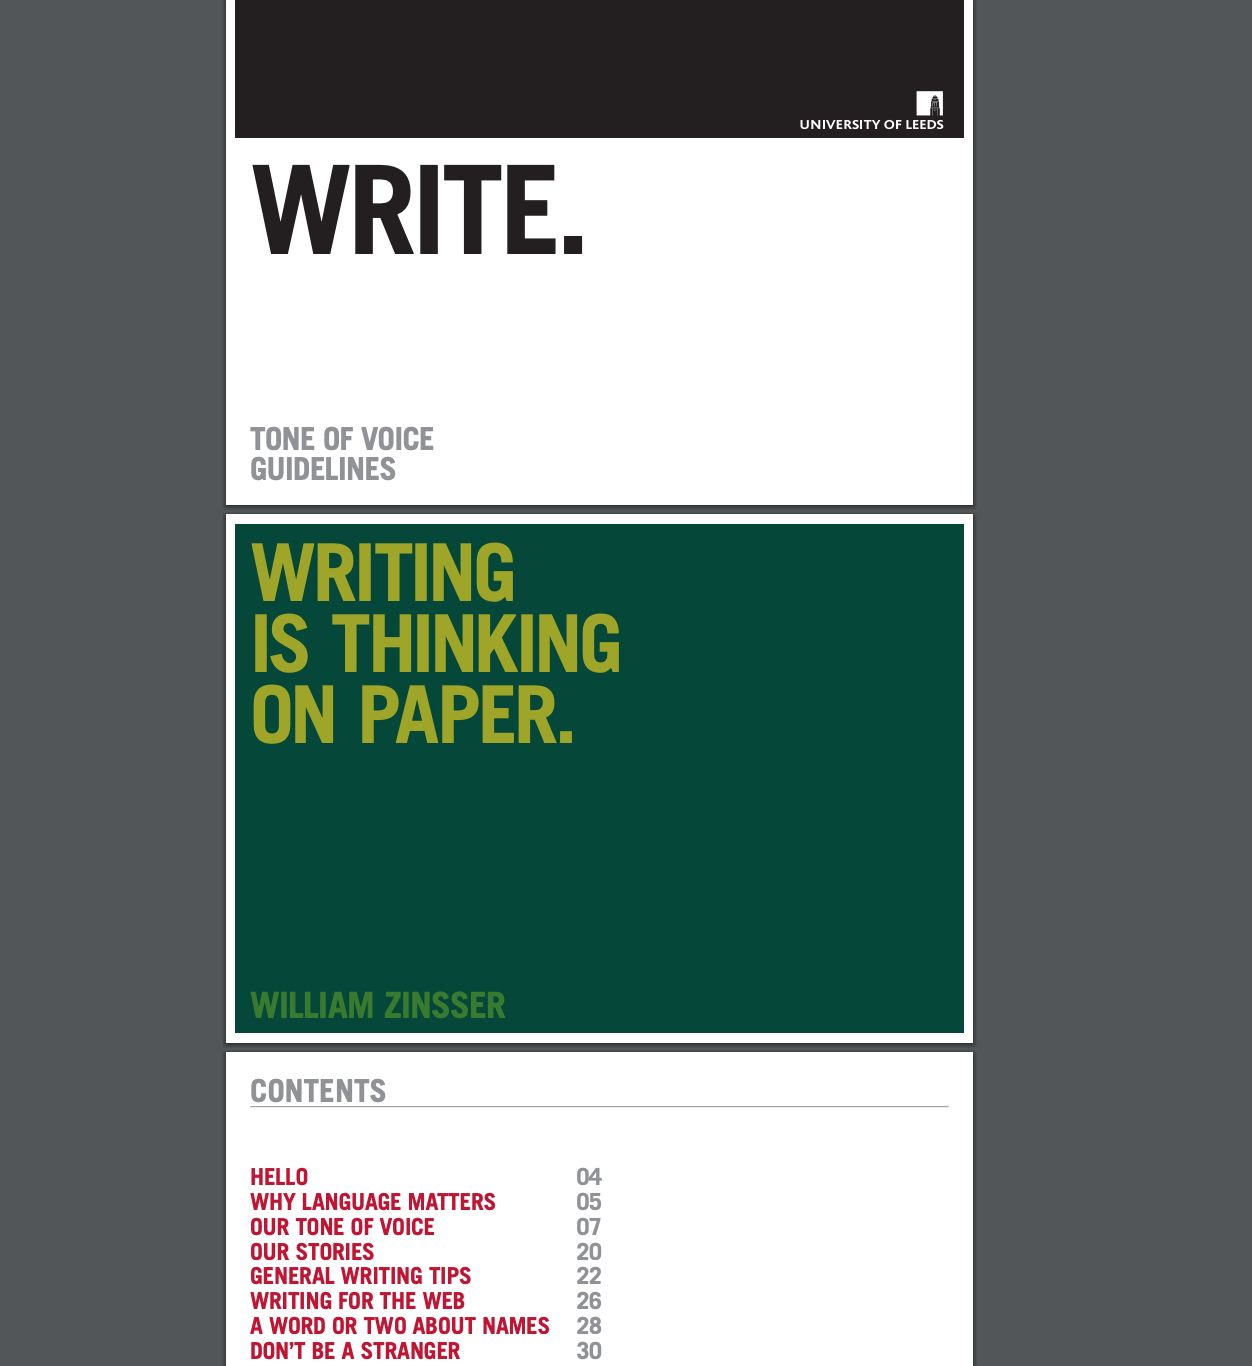 A screenshot showing some pages from the University of Leeds content style guide. Page one has the heading 'Write: tone of voice guidelines'. Page two says in a large font, 'Writing is thinking on paper.' Page three shows the table of contents for the style guide.